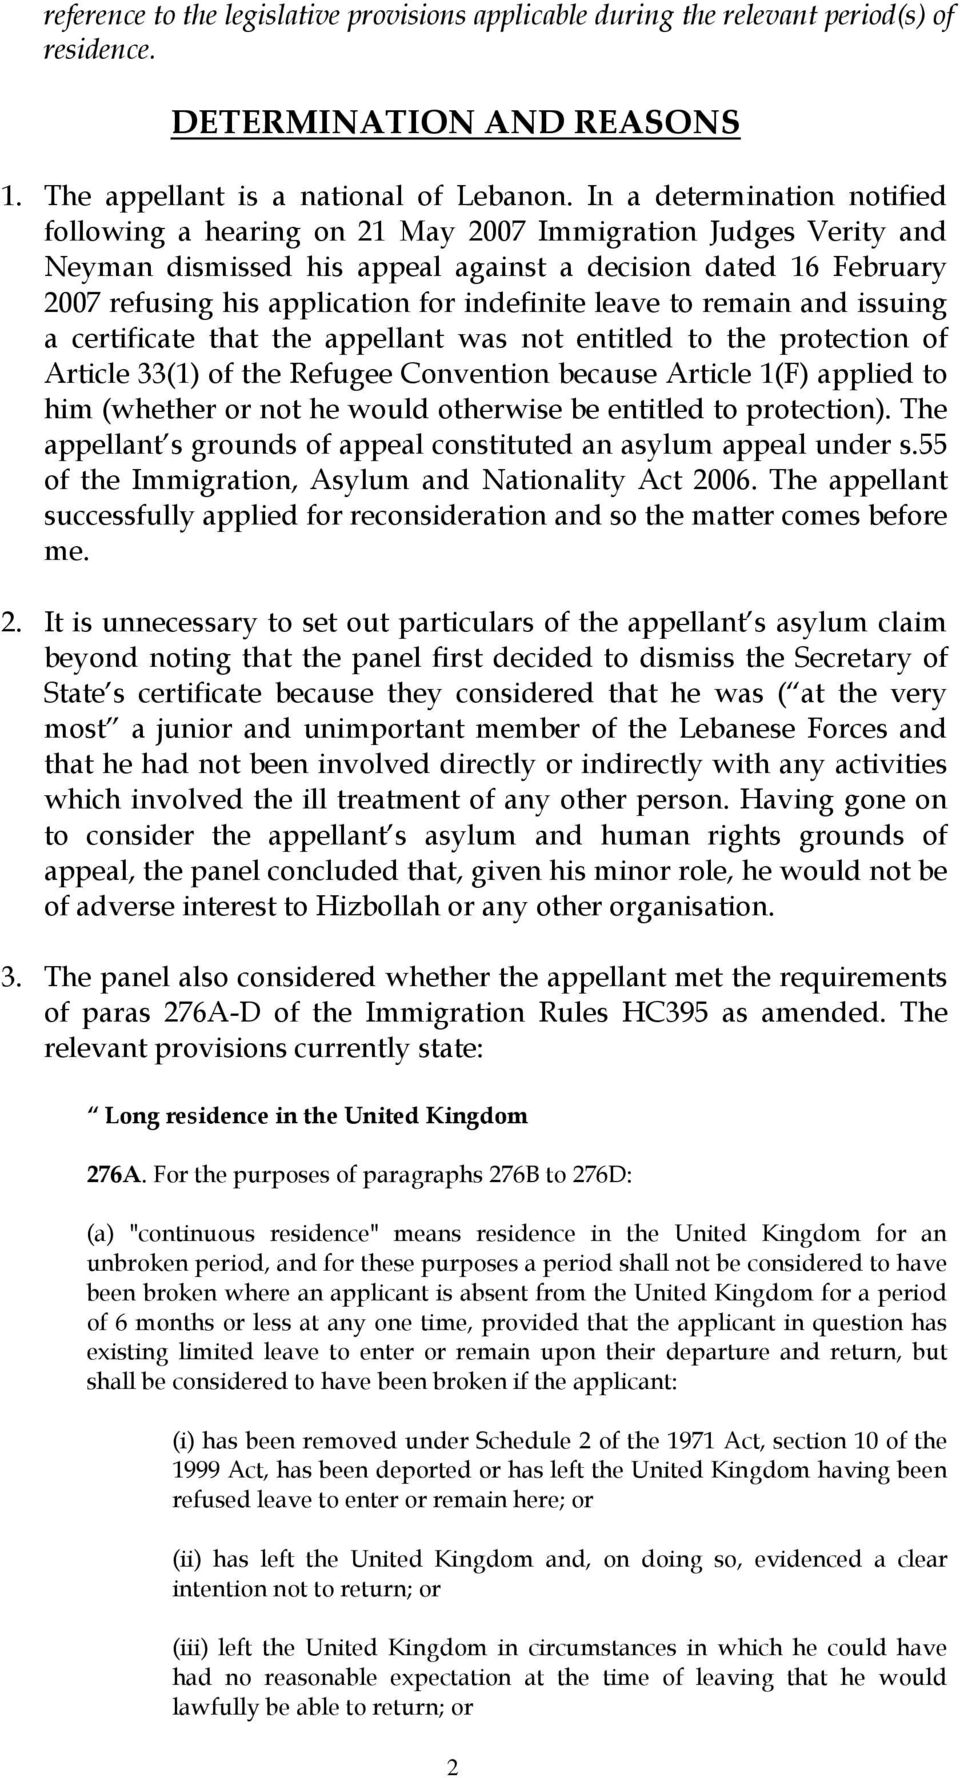 indefinite leave to remain and issuing a certificate that the appellant was not entitled to the protection of Article 33(1) of the Refugee Convention because Article 1(F) applied to him (whether or